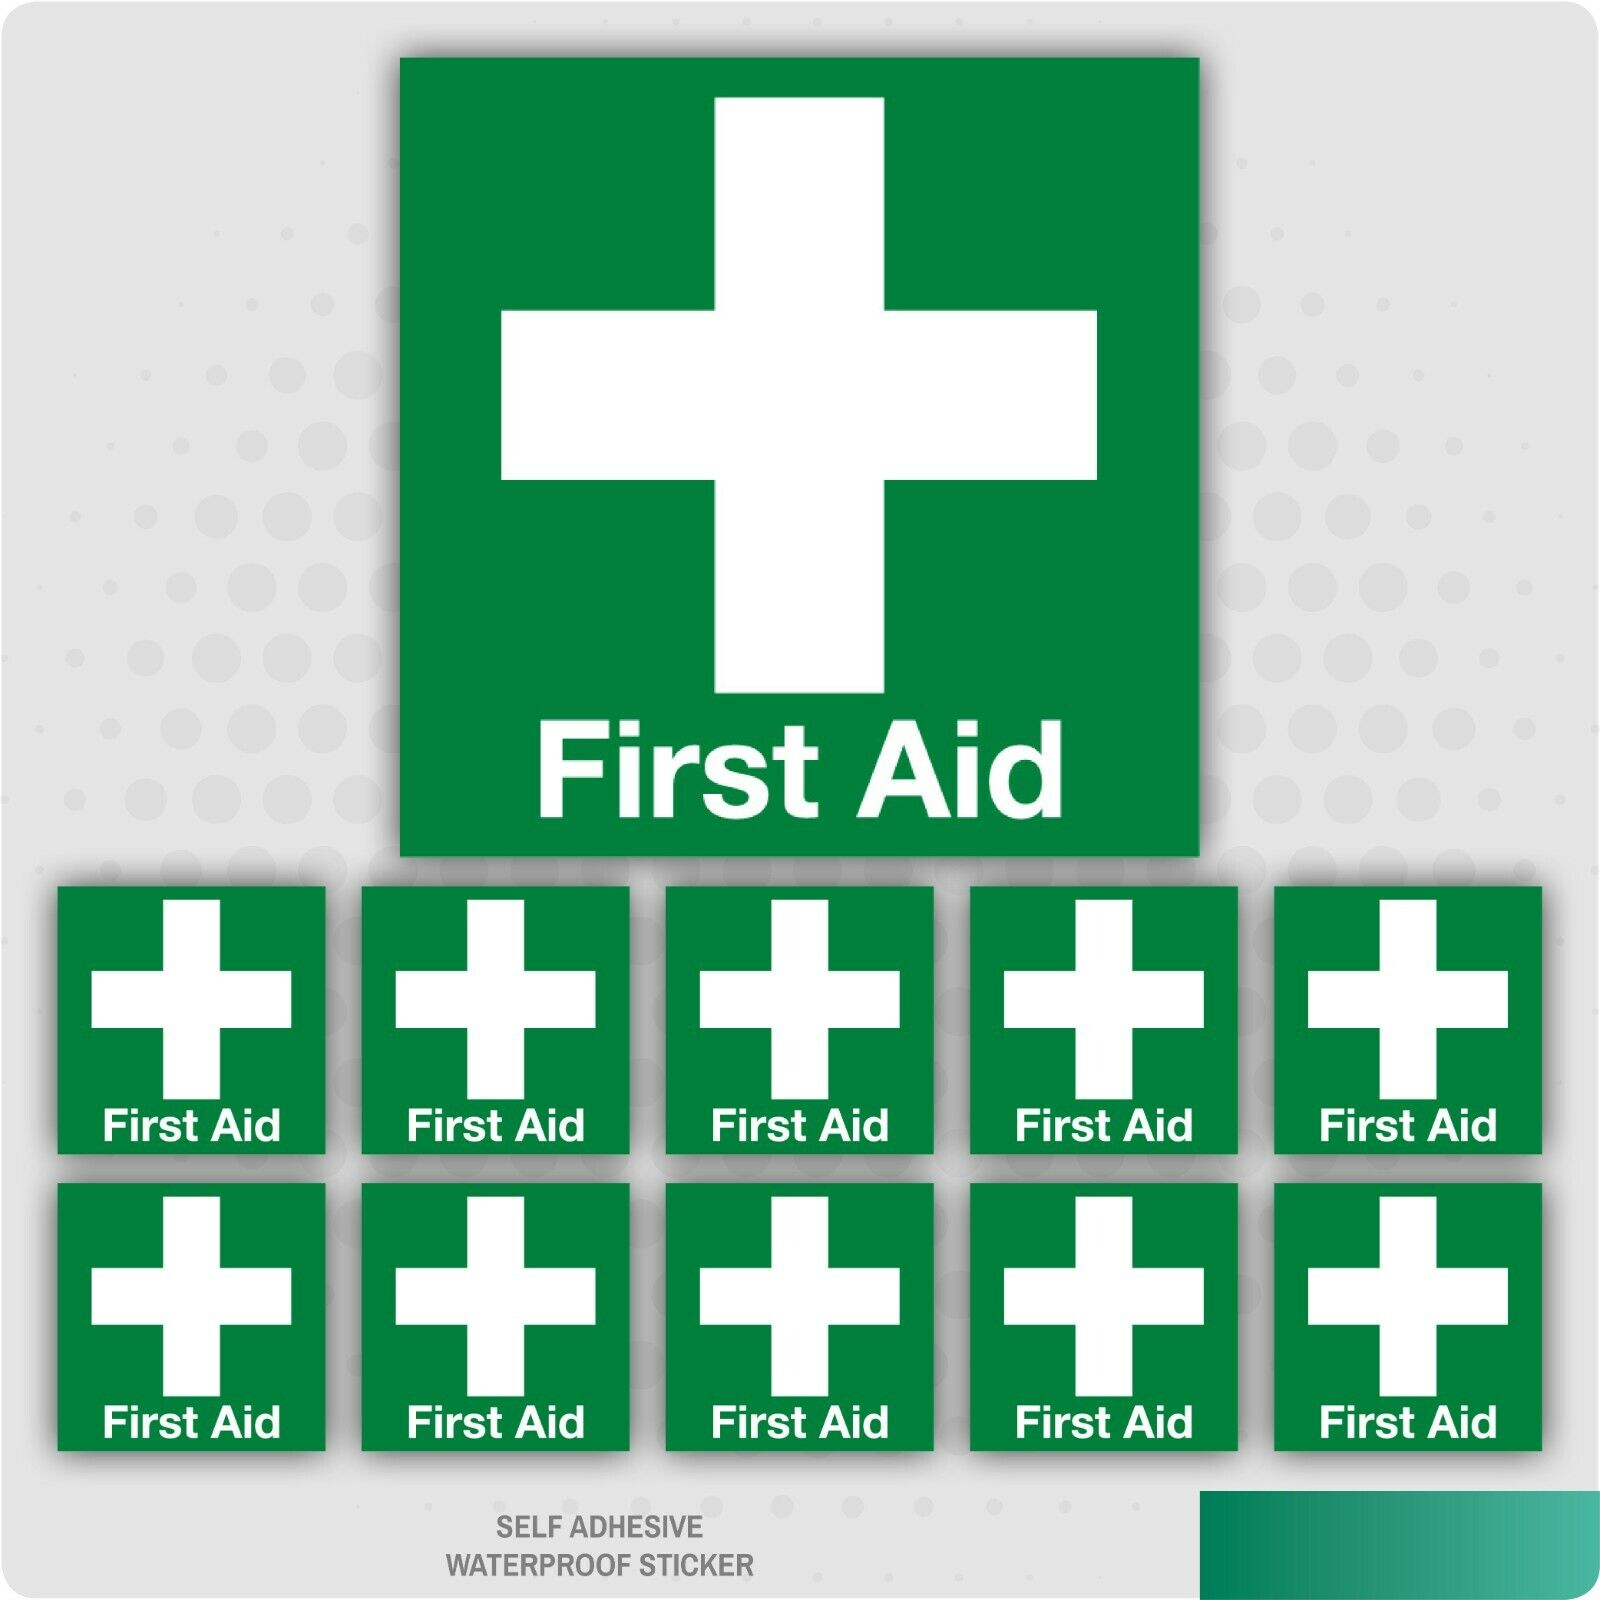 10 x First Aid Helmet Self Adhesive Vinyl Stickers - Health & Safety - Medical